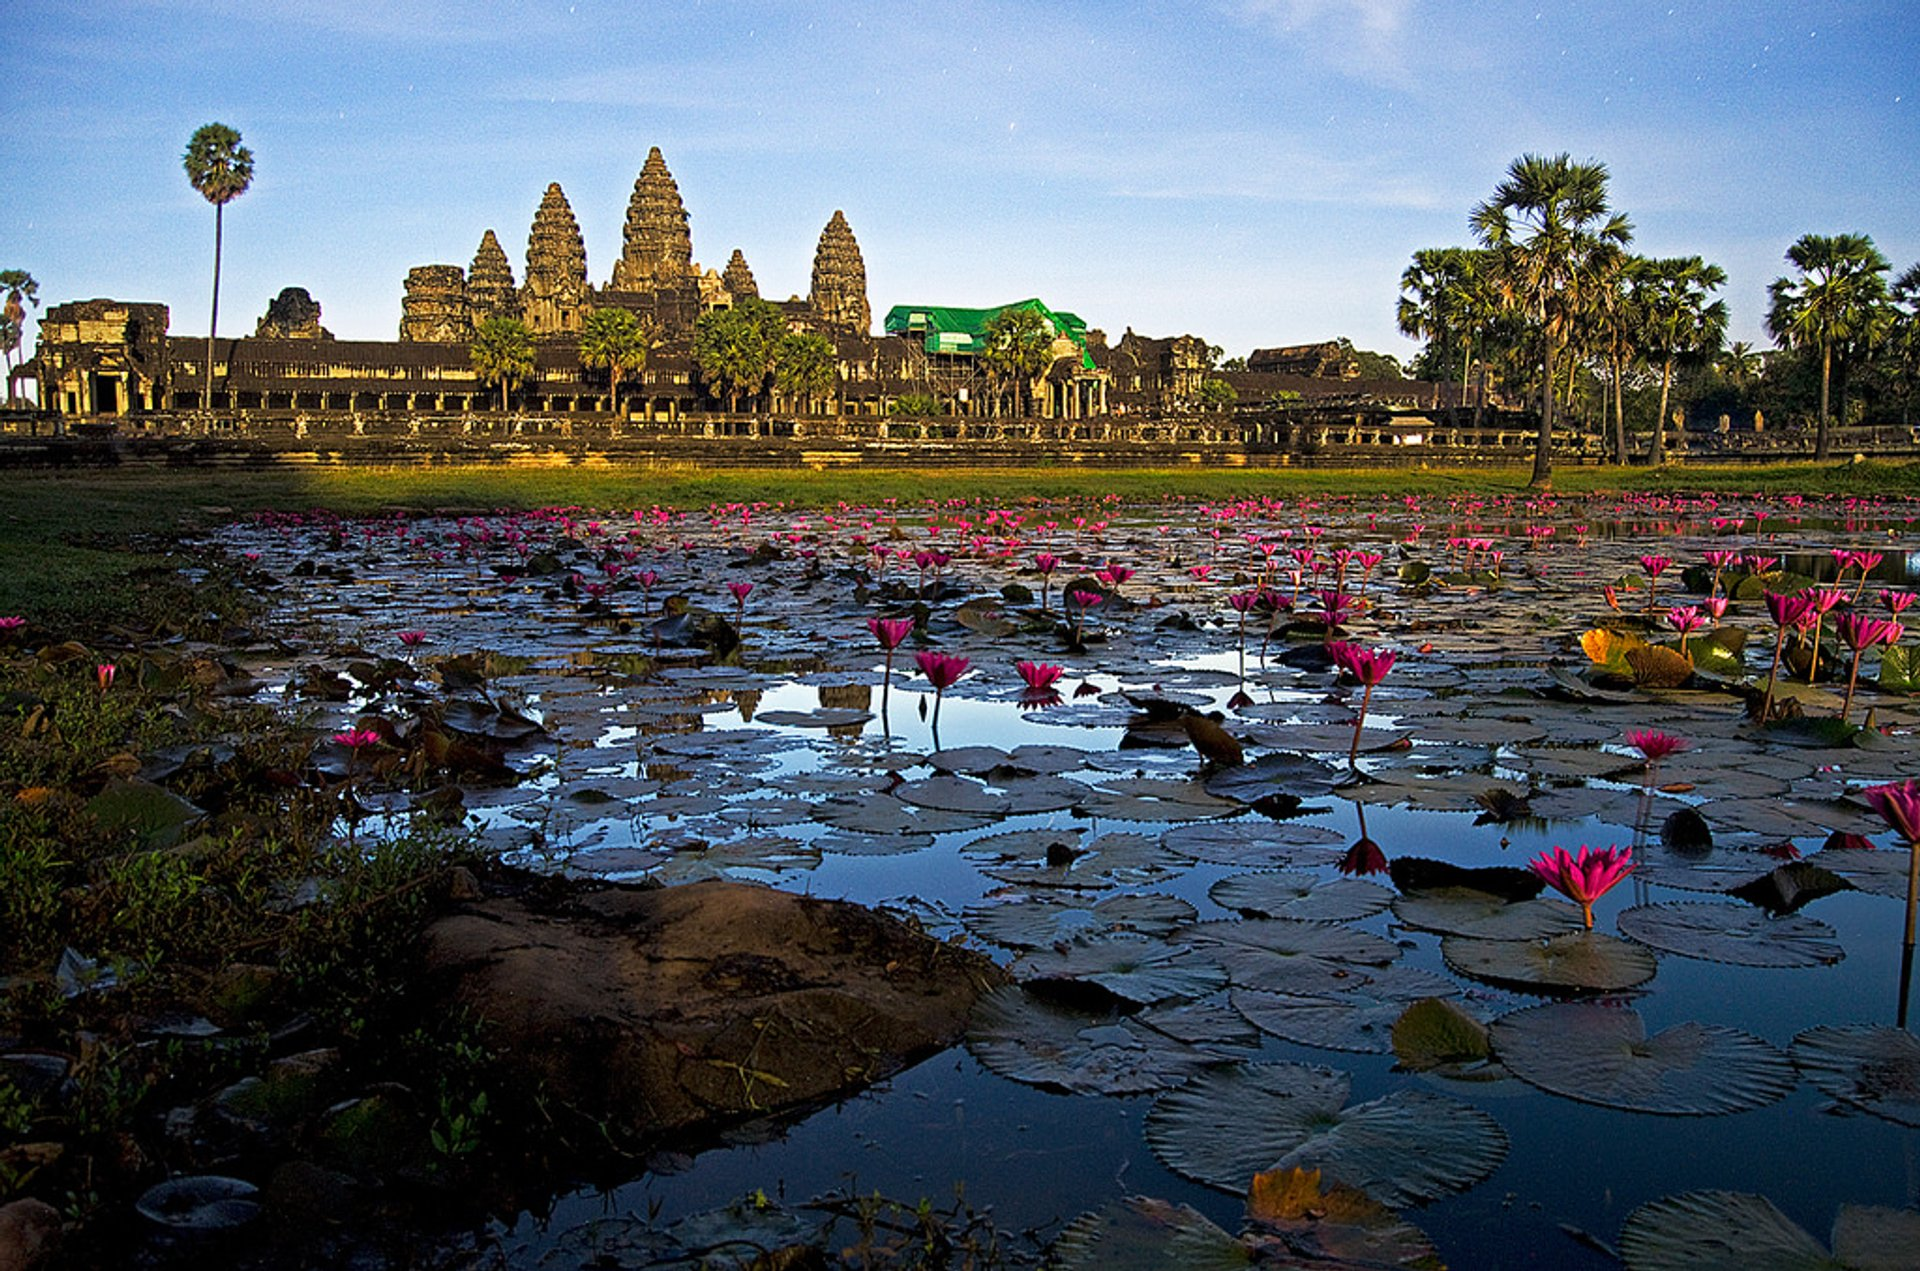 Lotus Blooming in Cambodia 2020 - Best Time